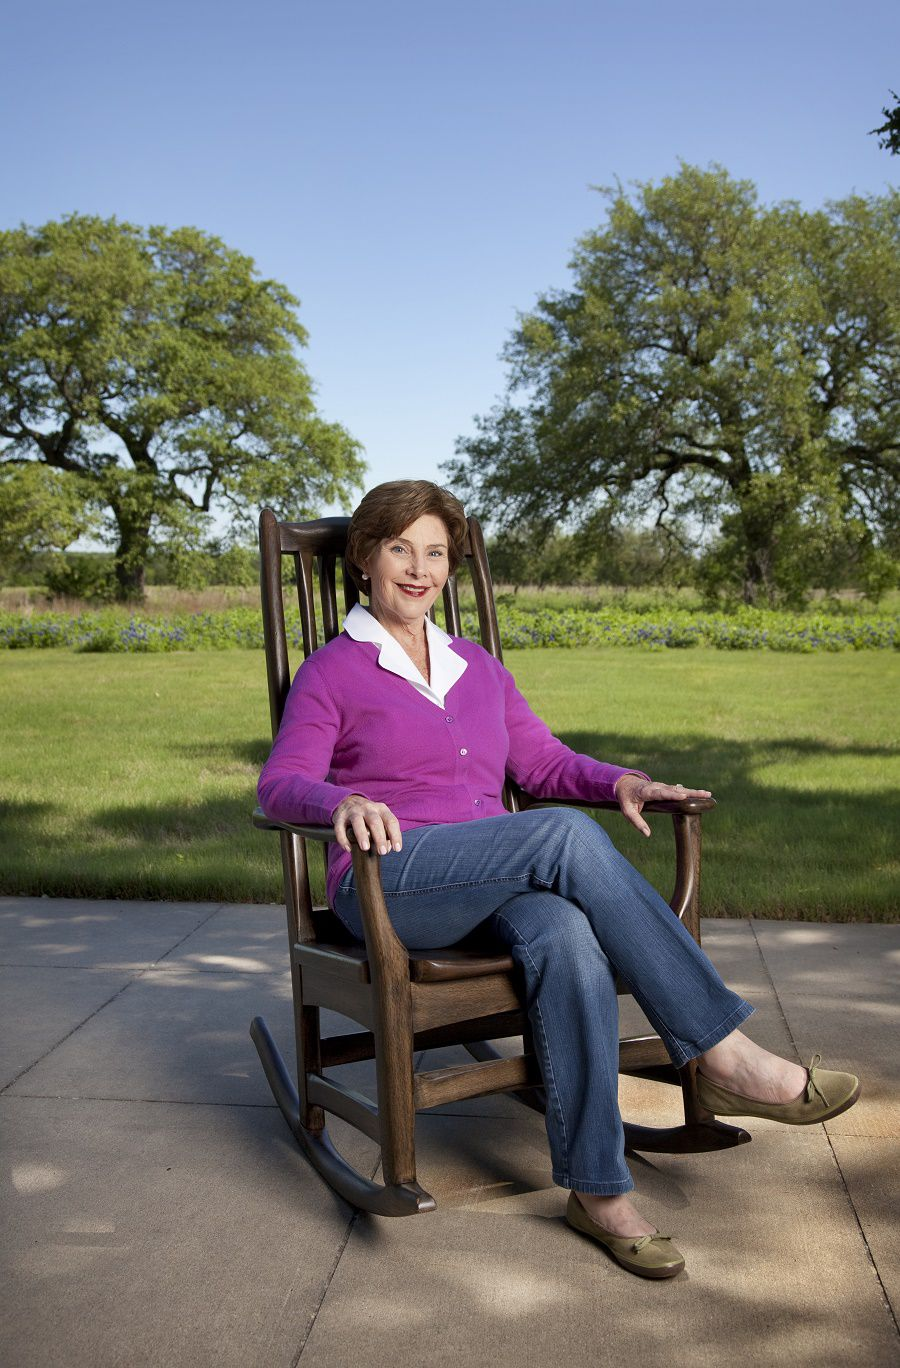 Former First Lady Laura Bush photographed on April 26, 2010, at the ranch in Crawford, Texas. She is seated in a rocking chair that was part of a custom made pair given to the President and First Lady by senior staff on their last Christmas in office. The wood for the chairs is from their ranch.